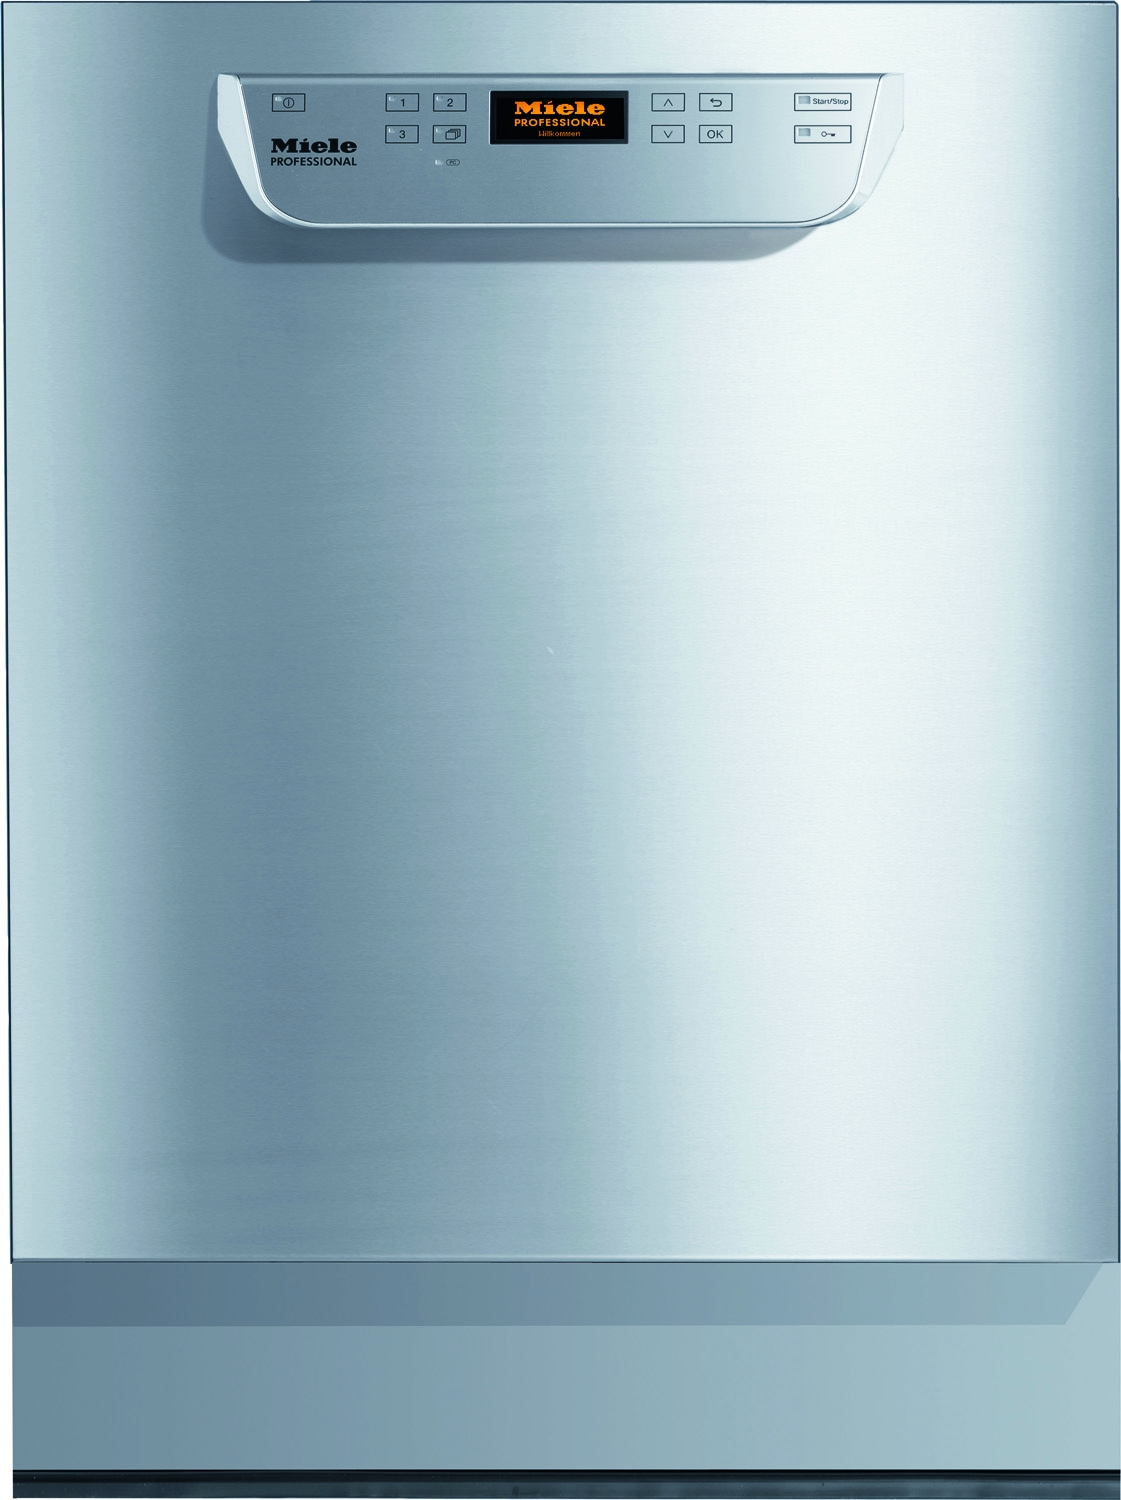 Miele Stainless Professional Series Dishwasher Pg8061ss